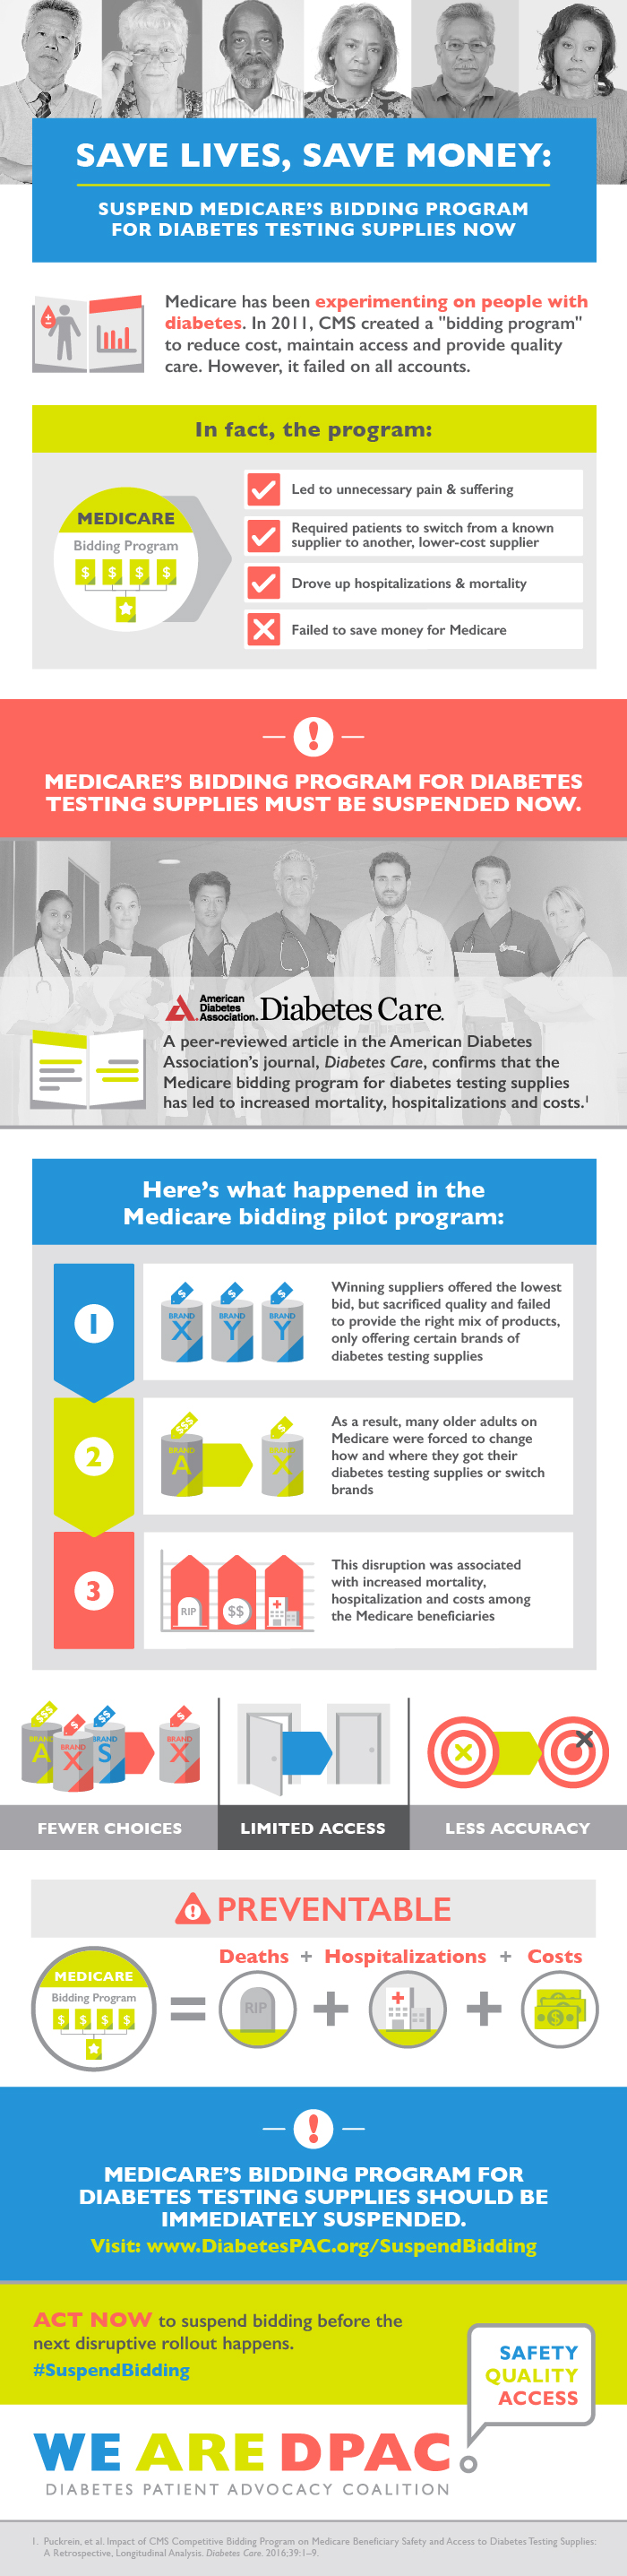 DPAC_Infographic_4.1